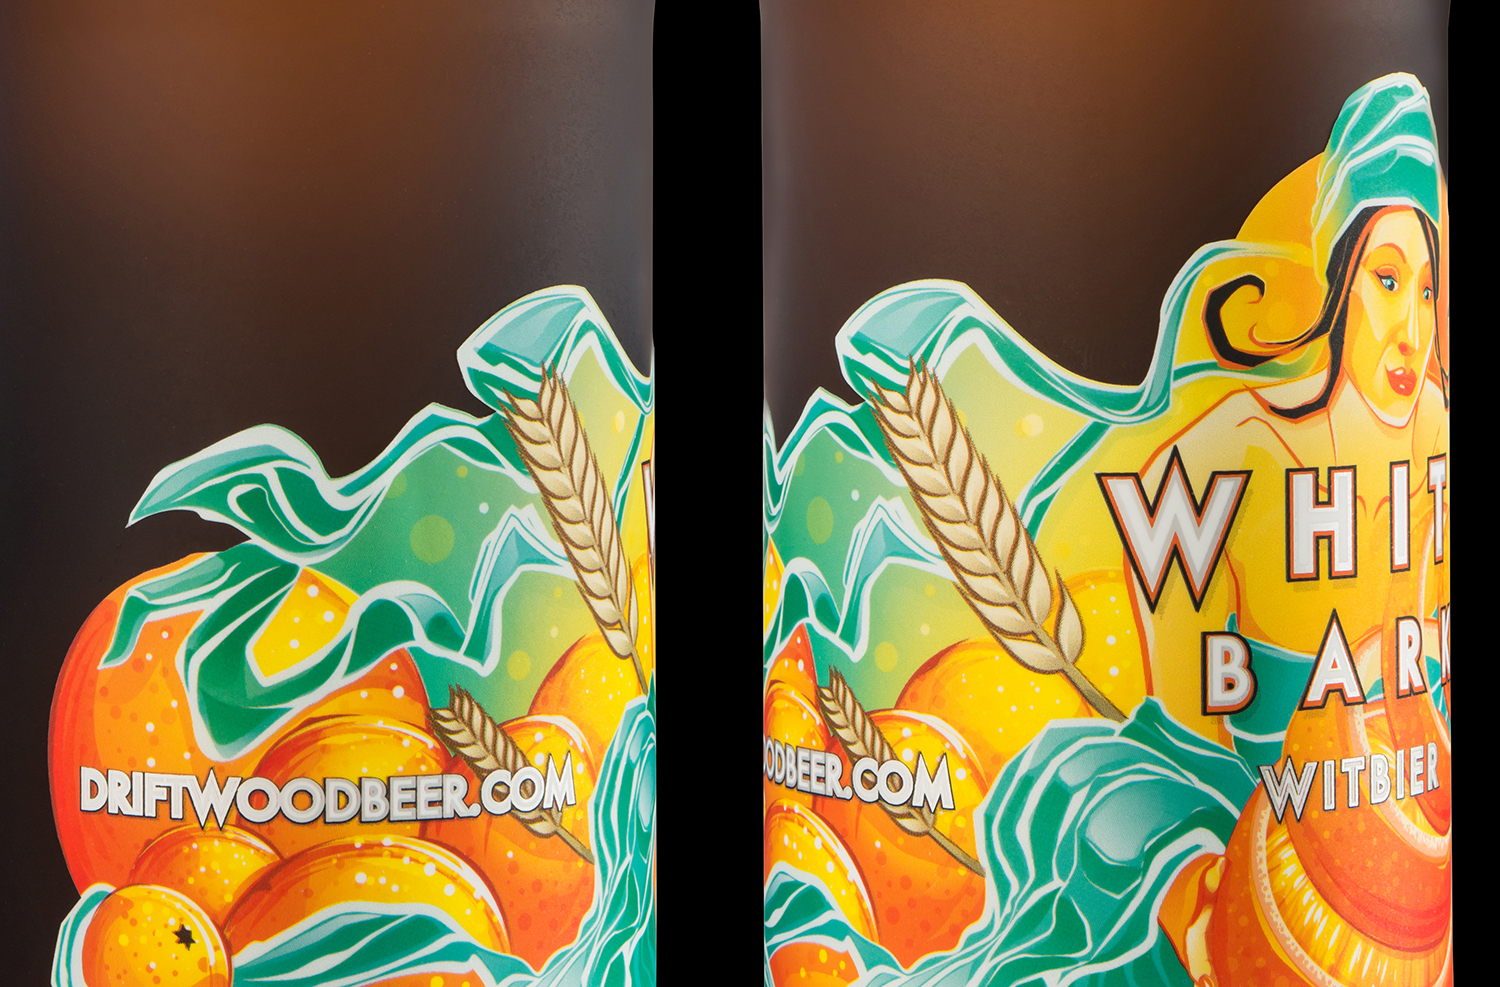 Packaging Design for Driftwood Brewery's White Bark Witbier